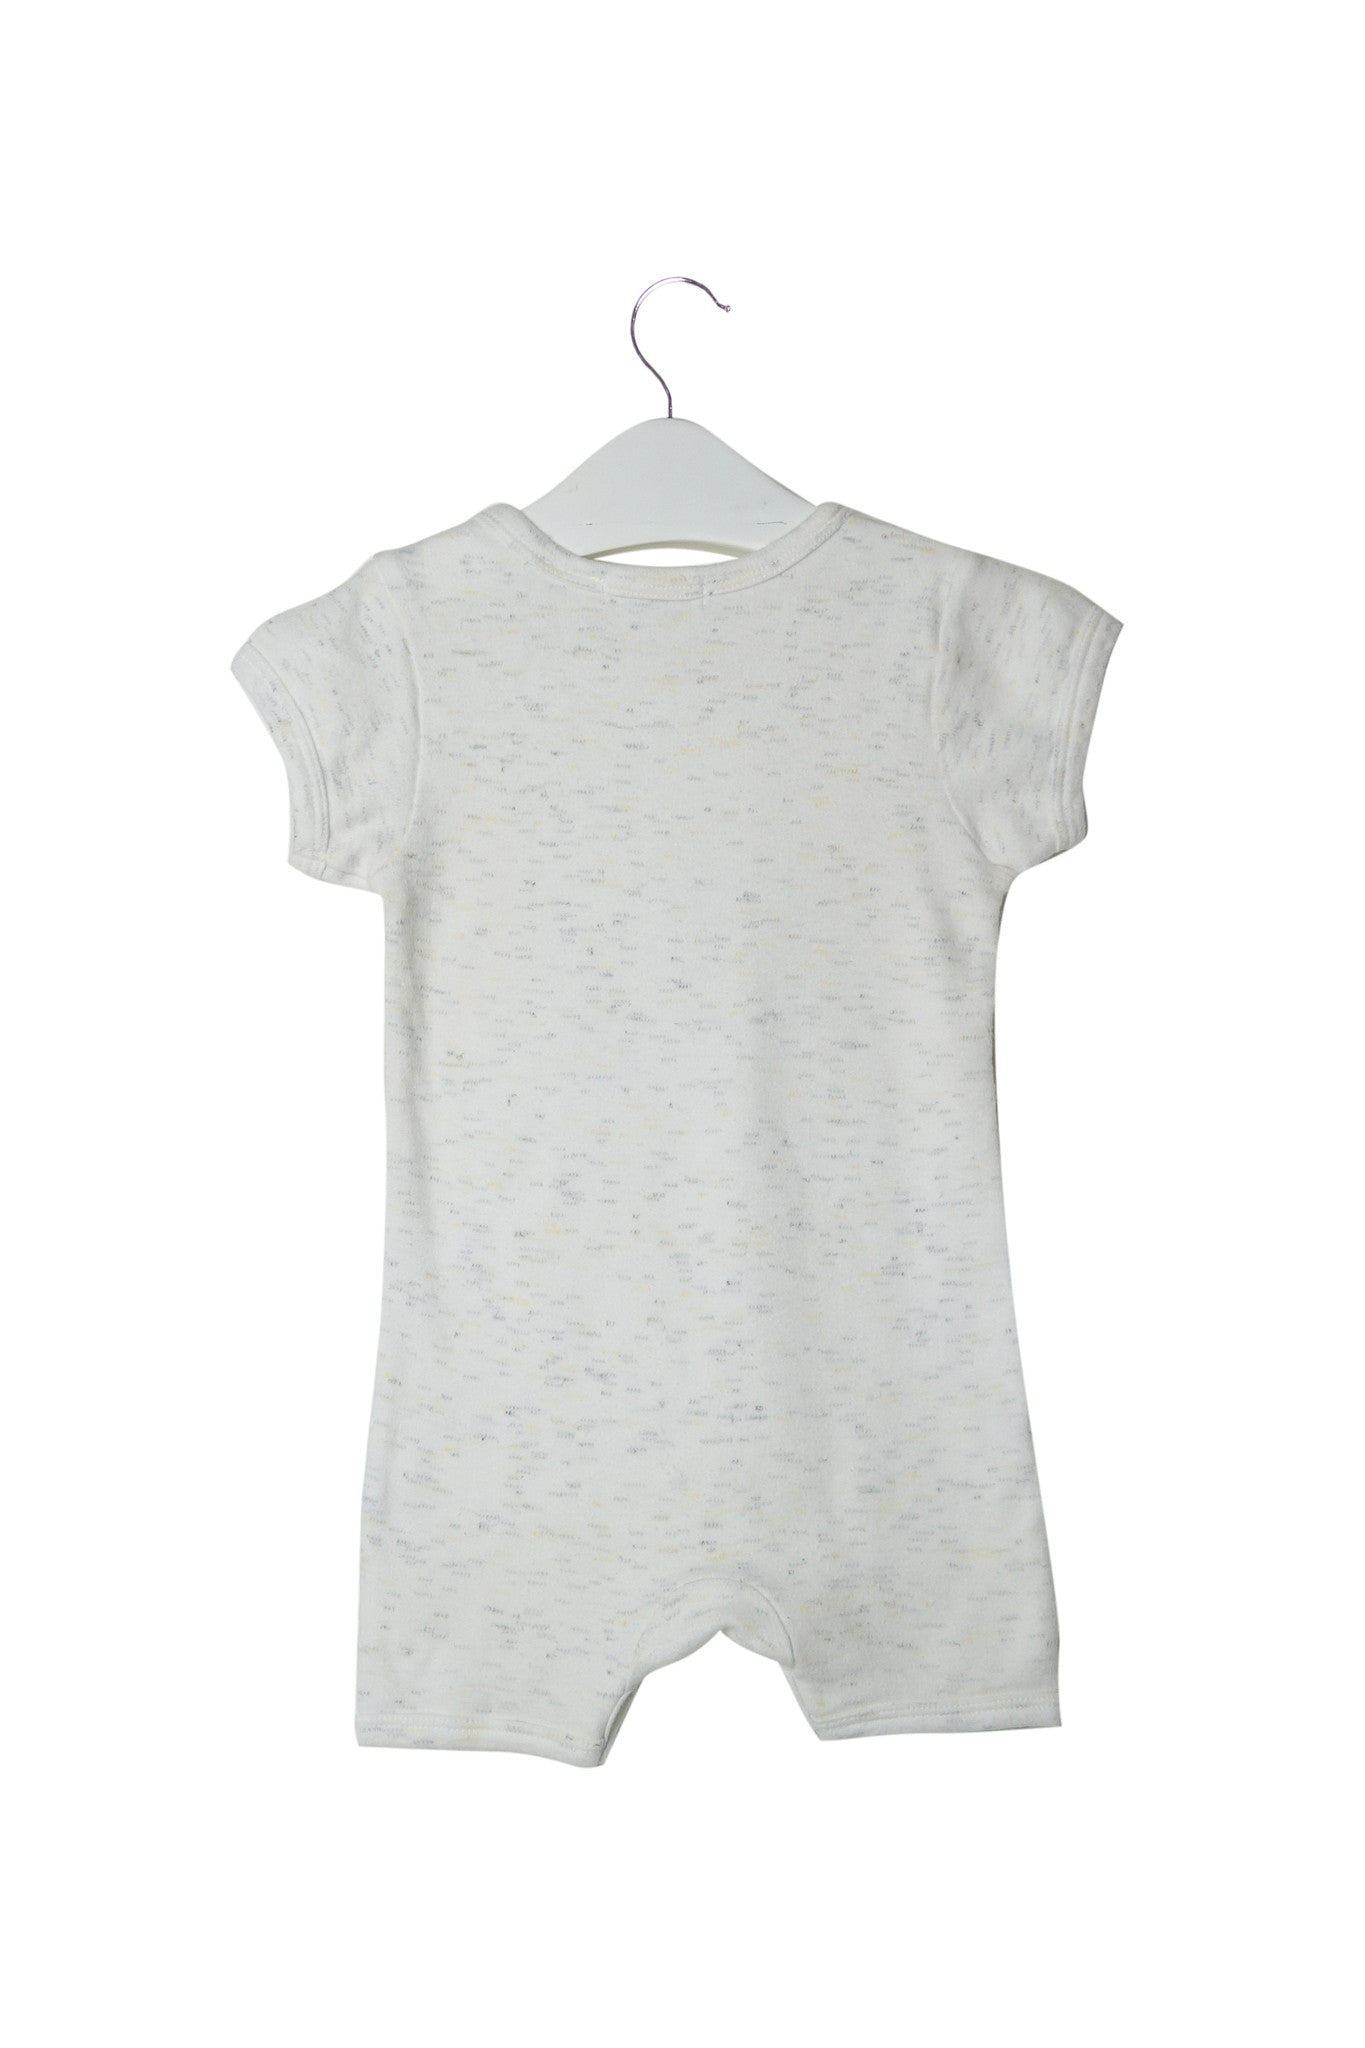 10002765 Wilson & Frenchy Baby~Romper 6-12M at Retykle